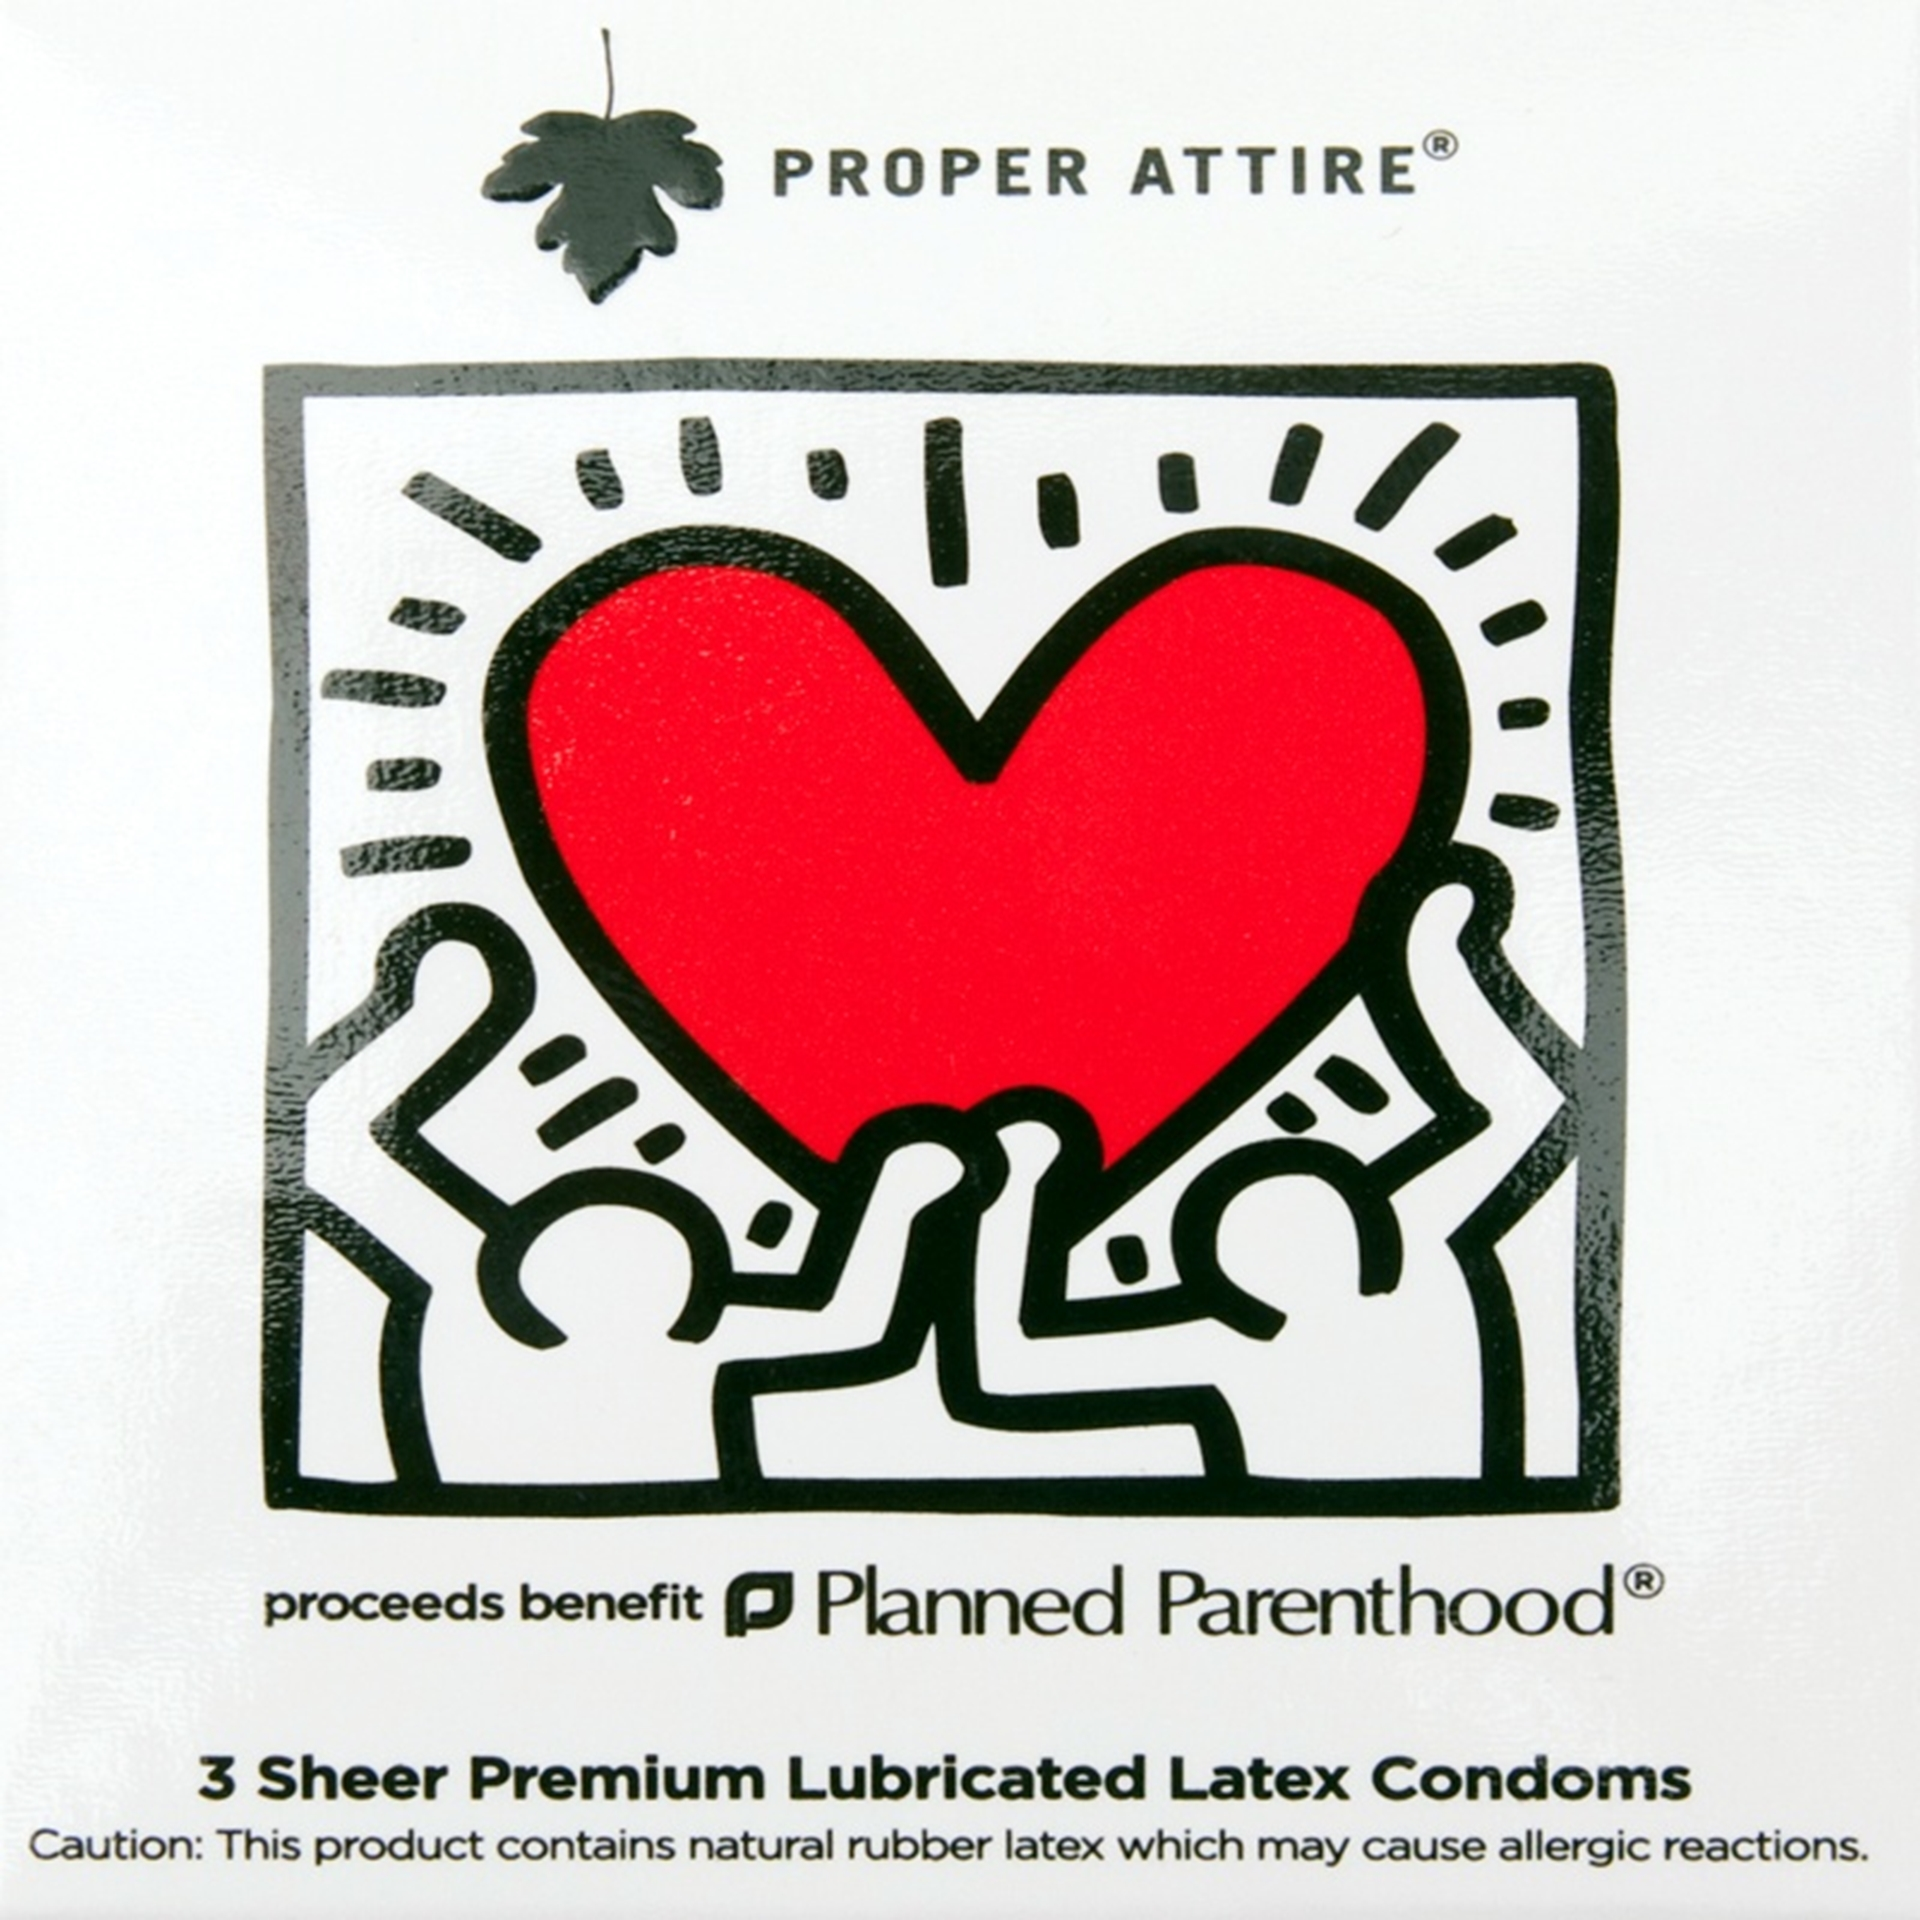 keith haring artists, gay and aids victim google doodle 4 may 2012